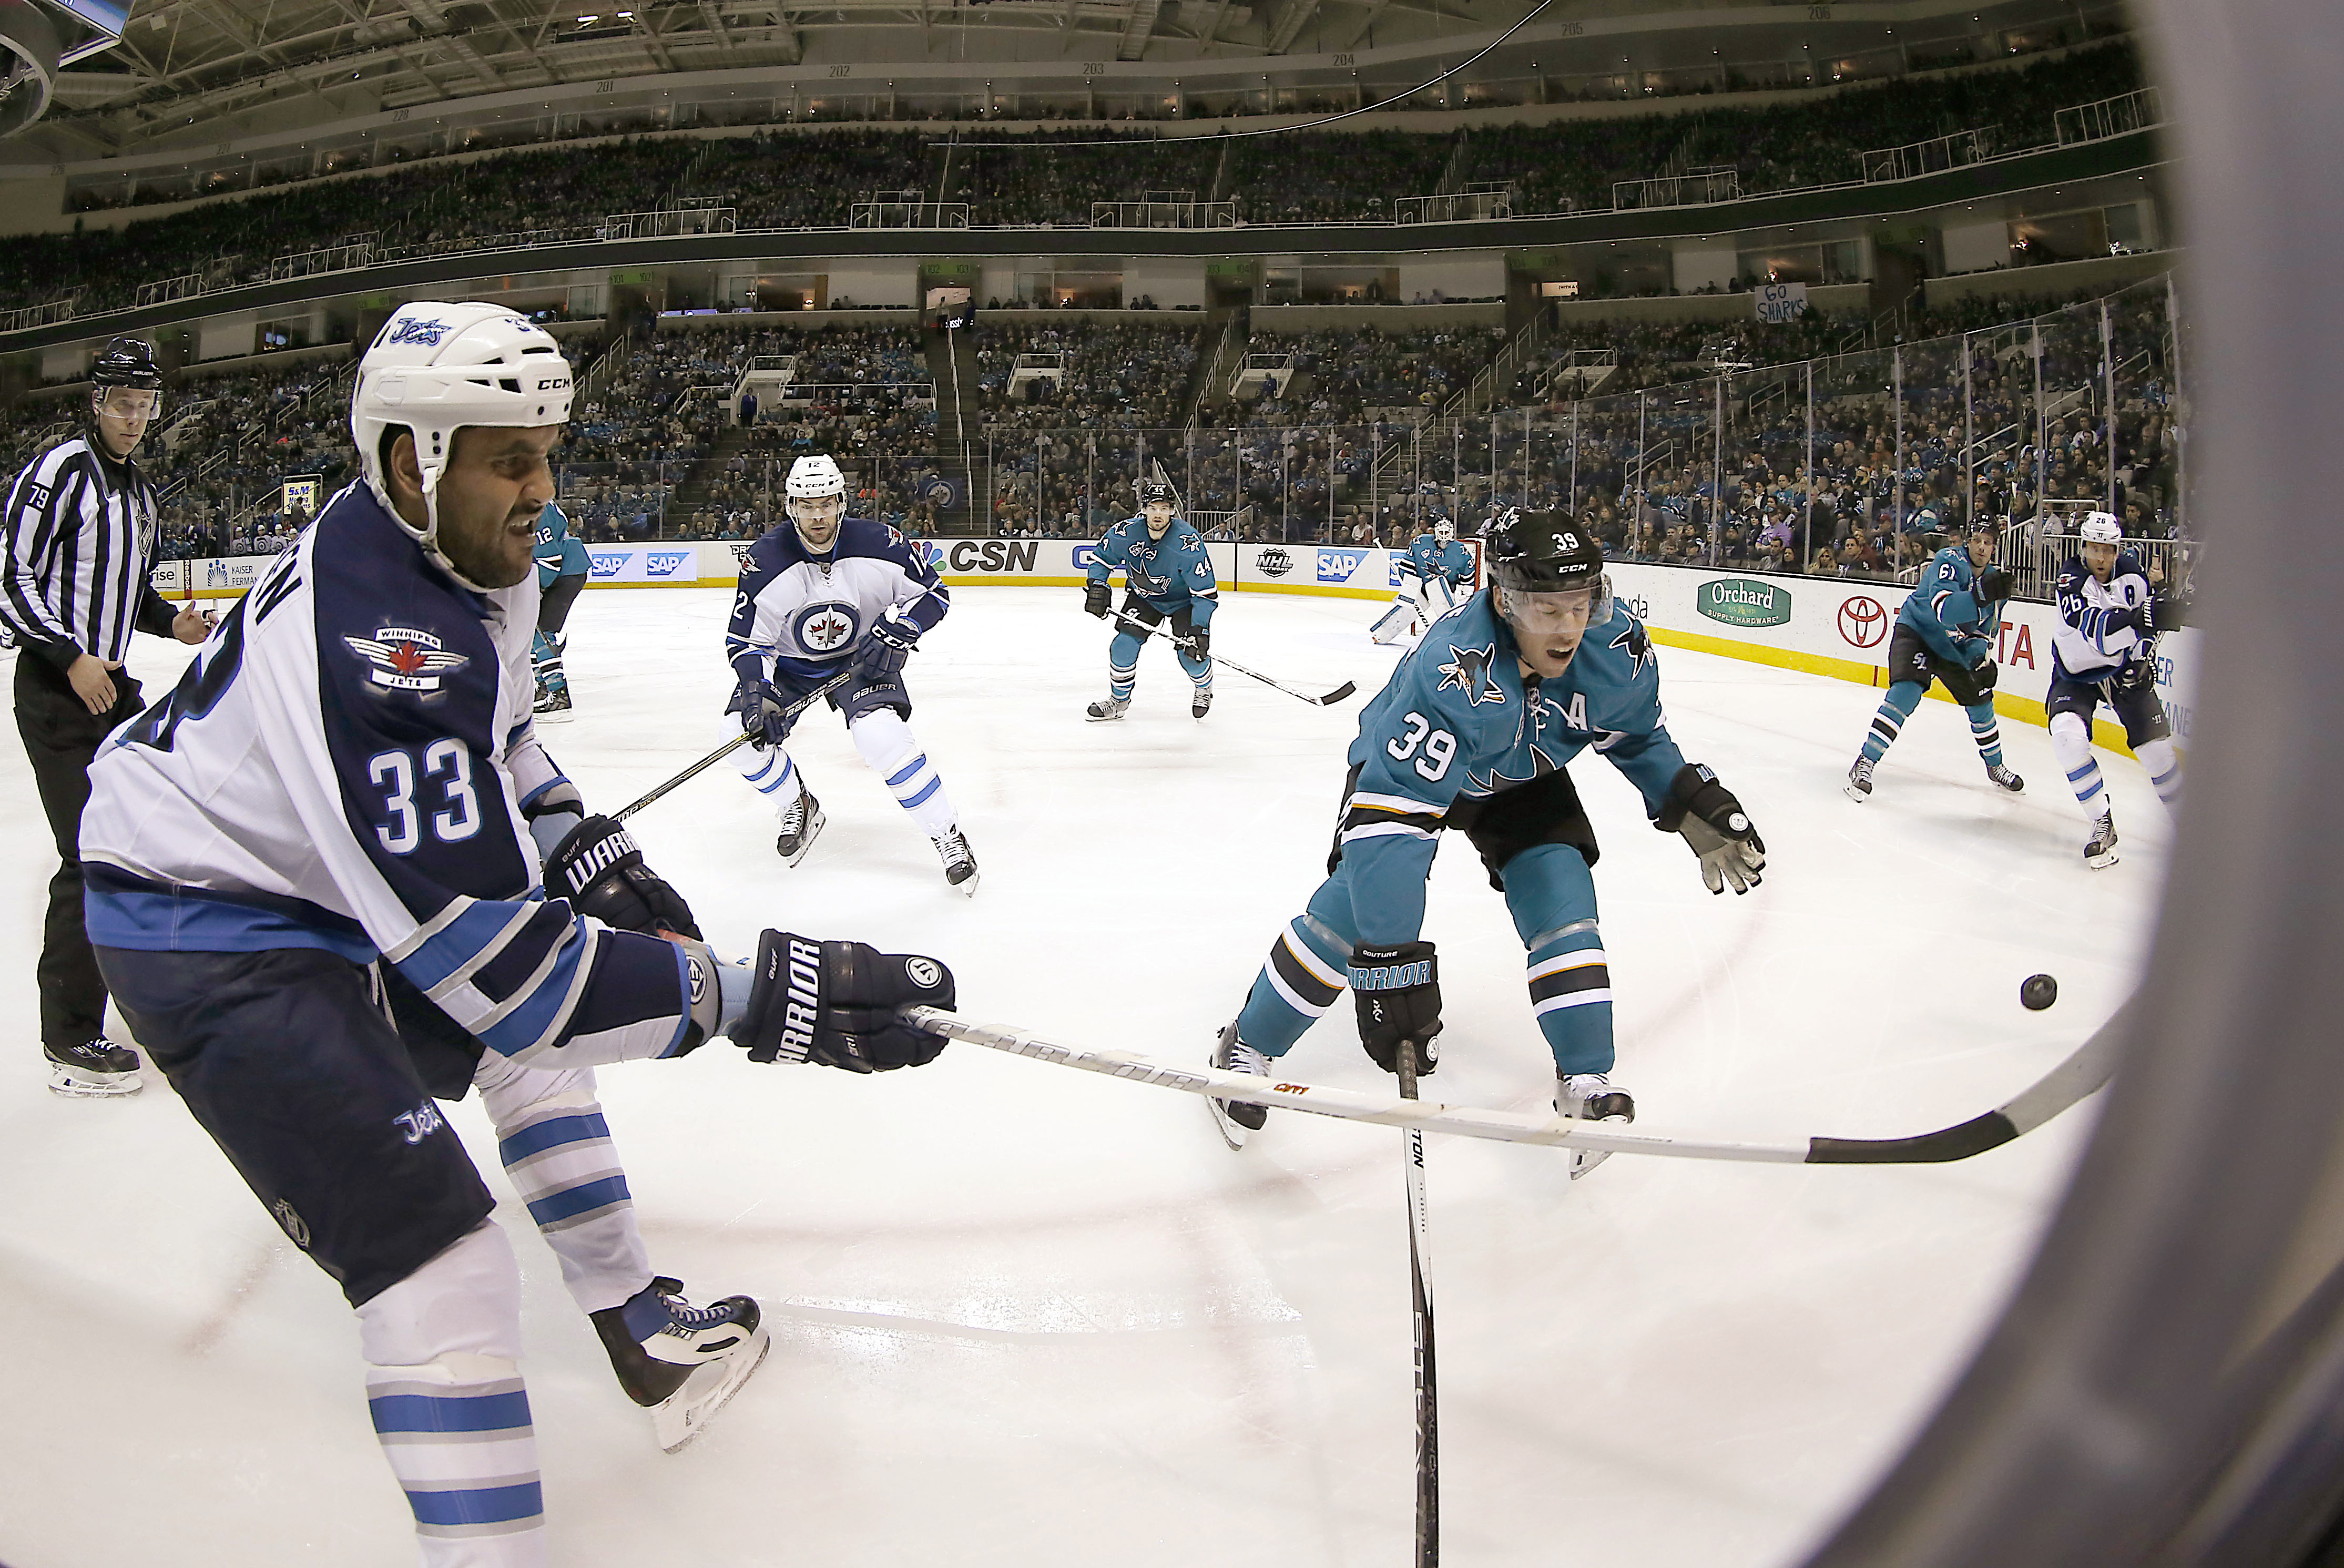 Winnipeg Jets' Dustin Byfuglien (33) passes the puck past San Jose Sharks' Logan Couture (39) during the second period of an NHL hockey game Saturday, Jan. 2, 2016, in San Jose, Calif. (AP Photo/Tony Avelar)